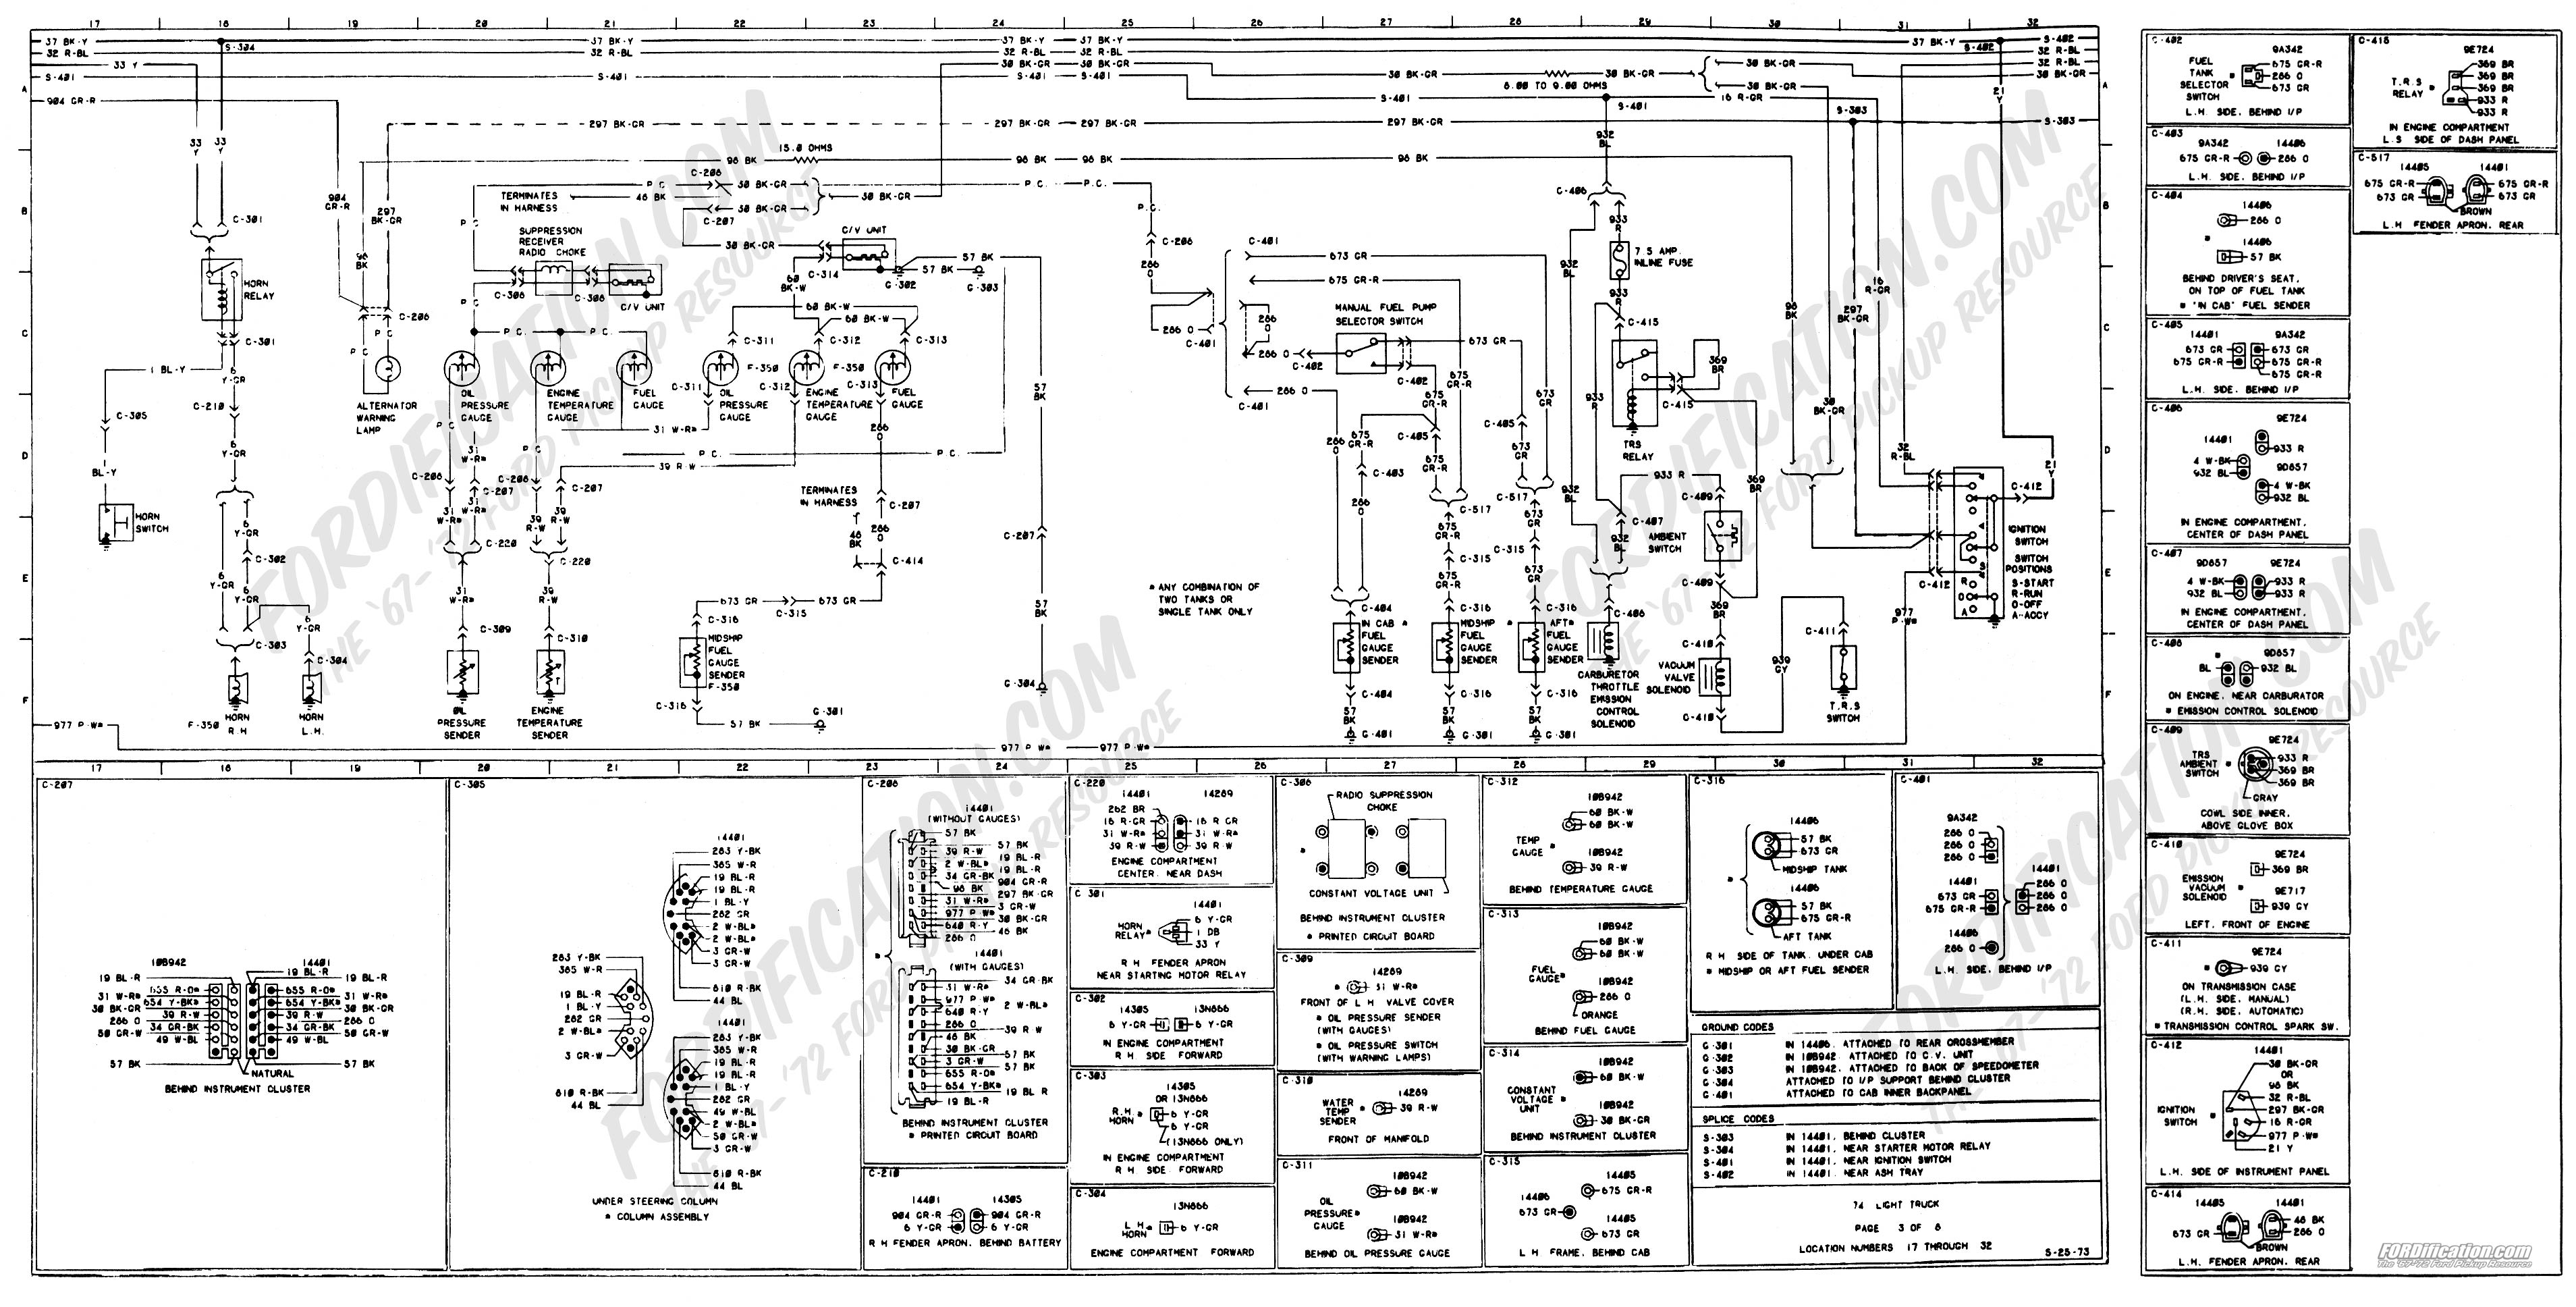 wiring_74master_3of8 1973 1979 ford truck wiring diagrams & schematics fordification net 1971 bronco wiring diagram at n-0.co